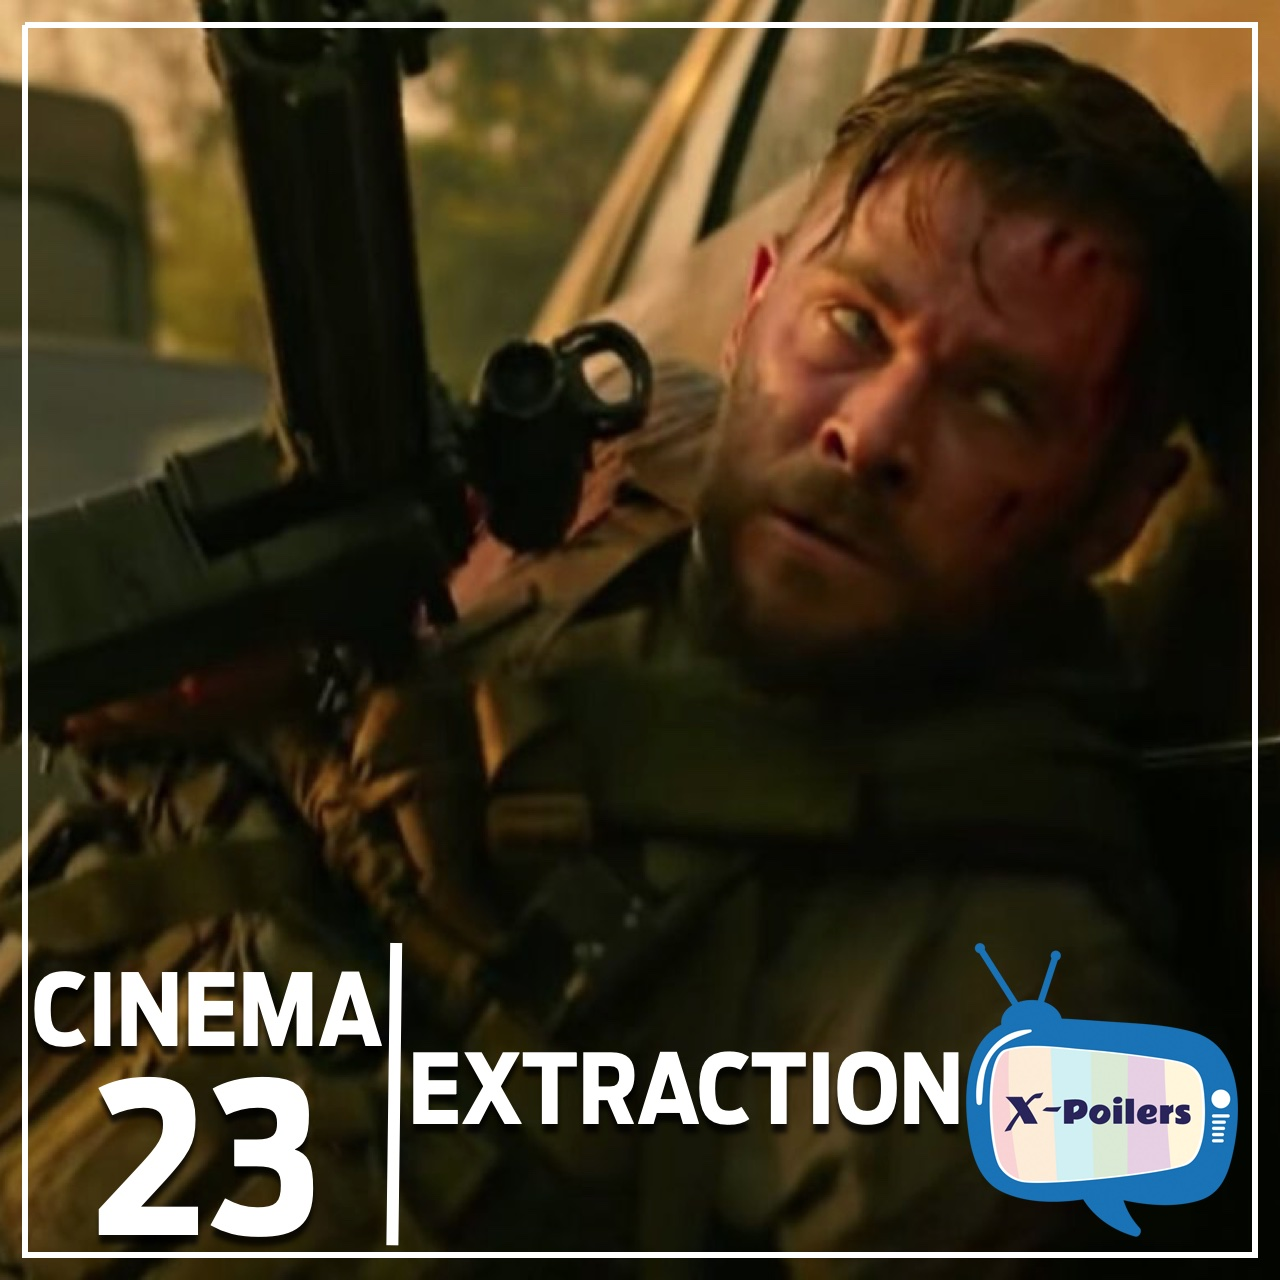 Cinema 23: Extraction